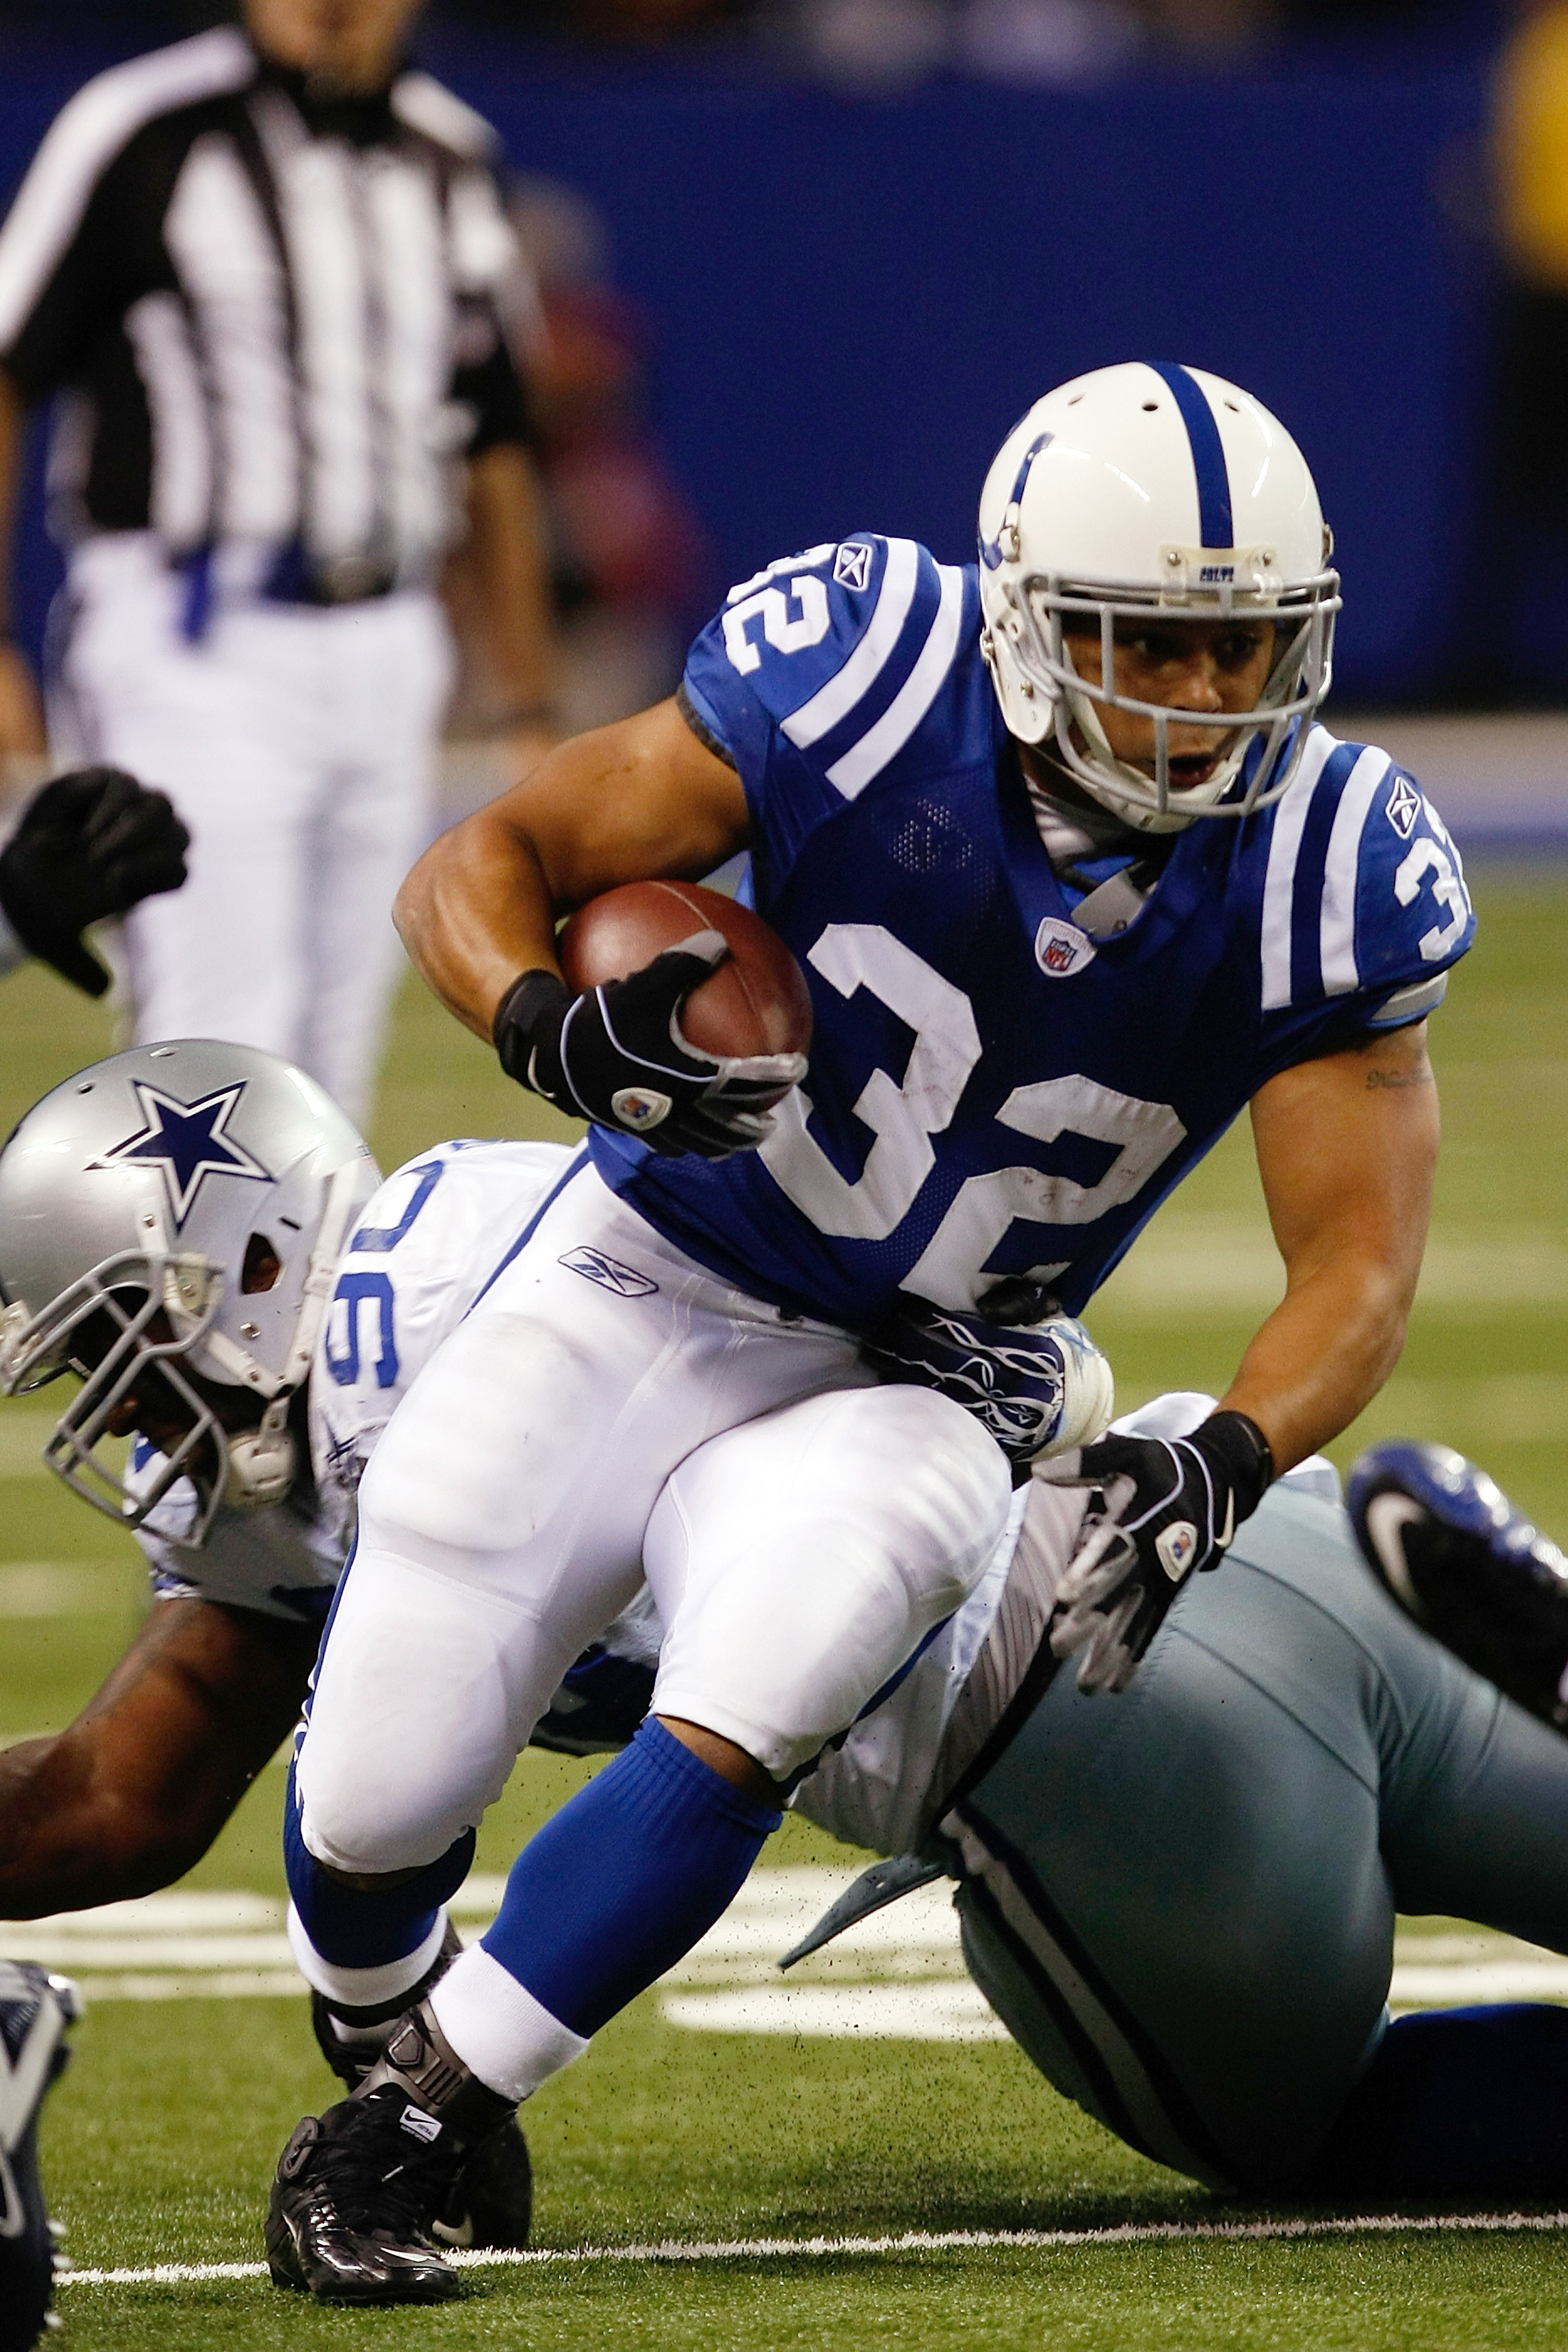 INDIANAPOLIS, IN - DECEMBER 05: Mike Hart #32 of the Indianapolis Colts runs against the Dallas Cowboys at Lucas Oil Stadium on December 5, 2010 in Indianapolis, Indiana.  (Photo by Scott Boehm/Getty Images)